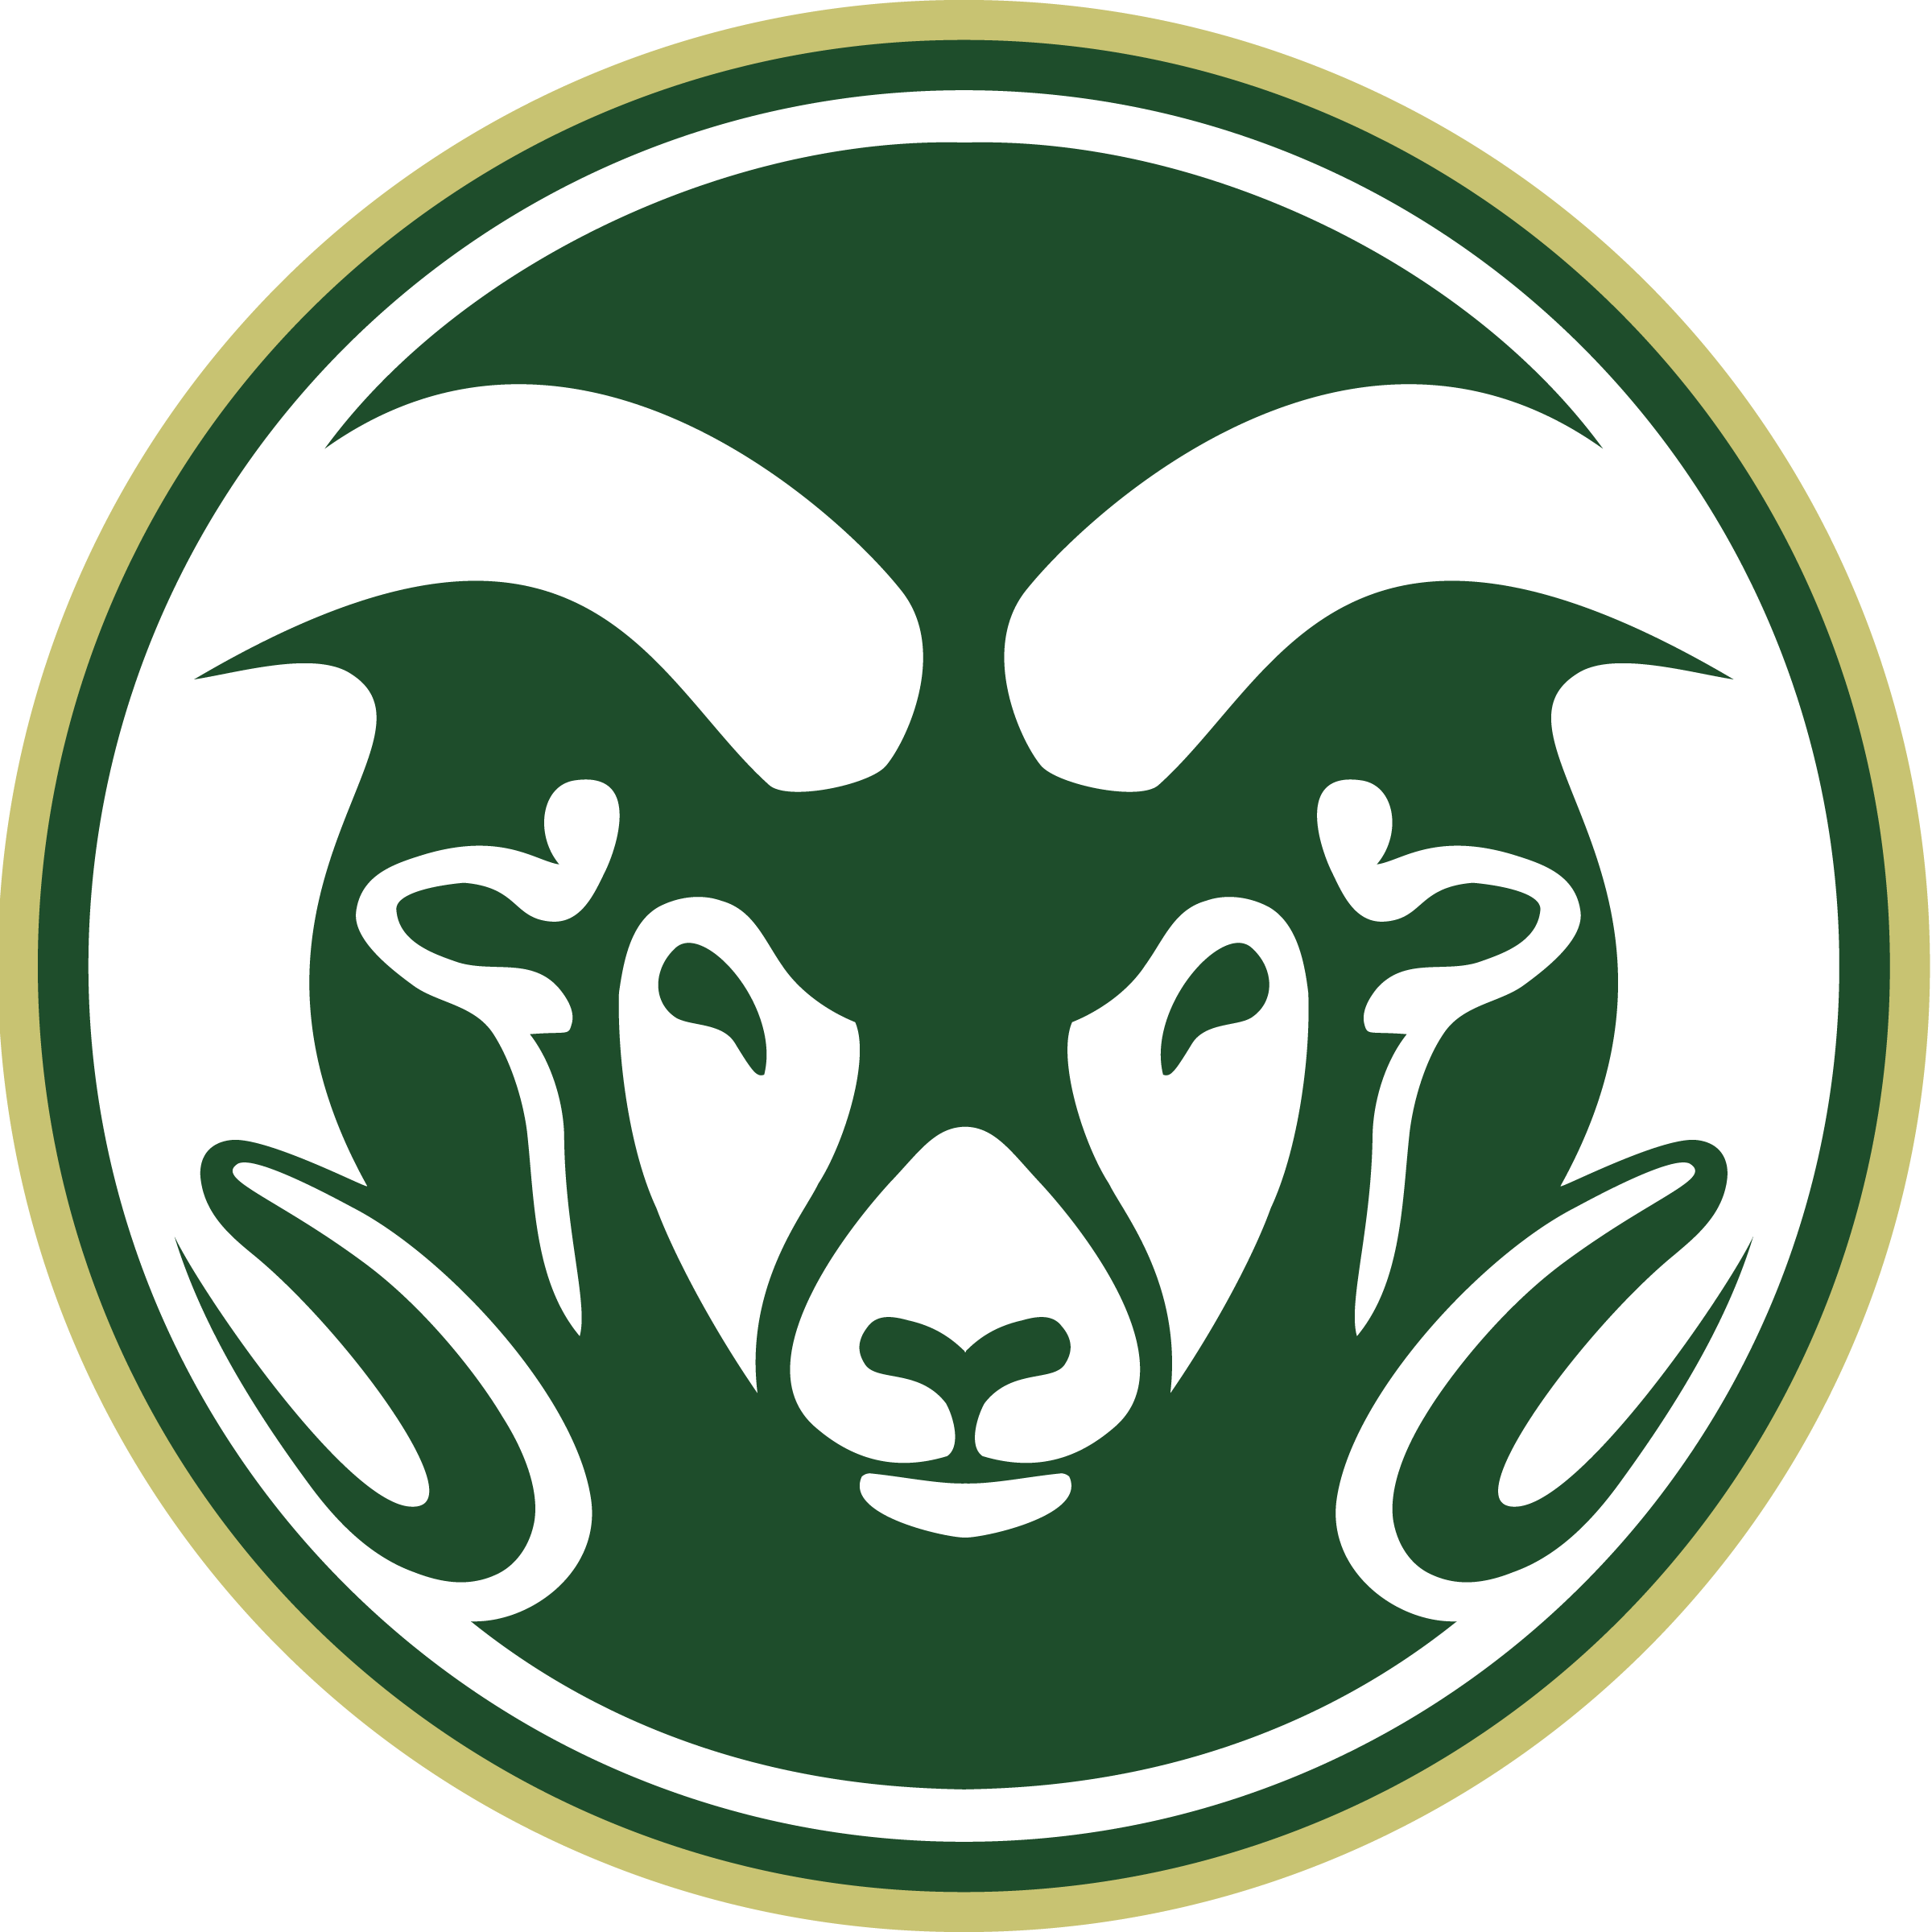 Game Notes Astatemb At Colorado State Arkansas State Colorado State University Logo Clipart Full Size Clipart 5264842 Pinclipart